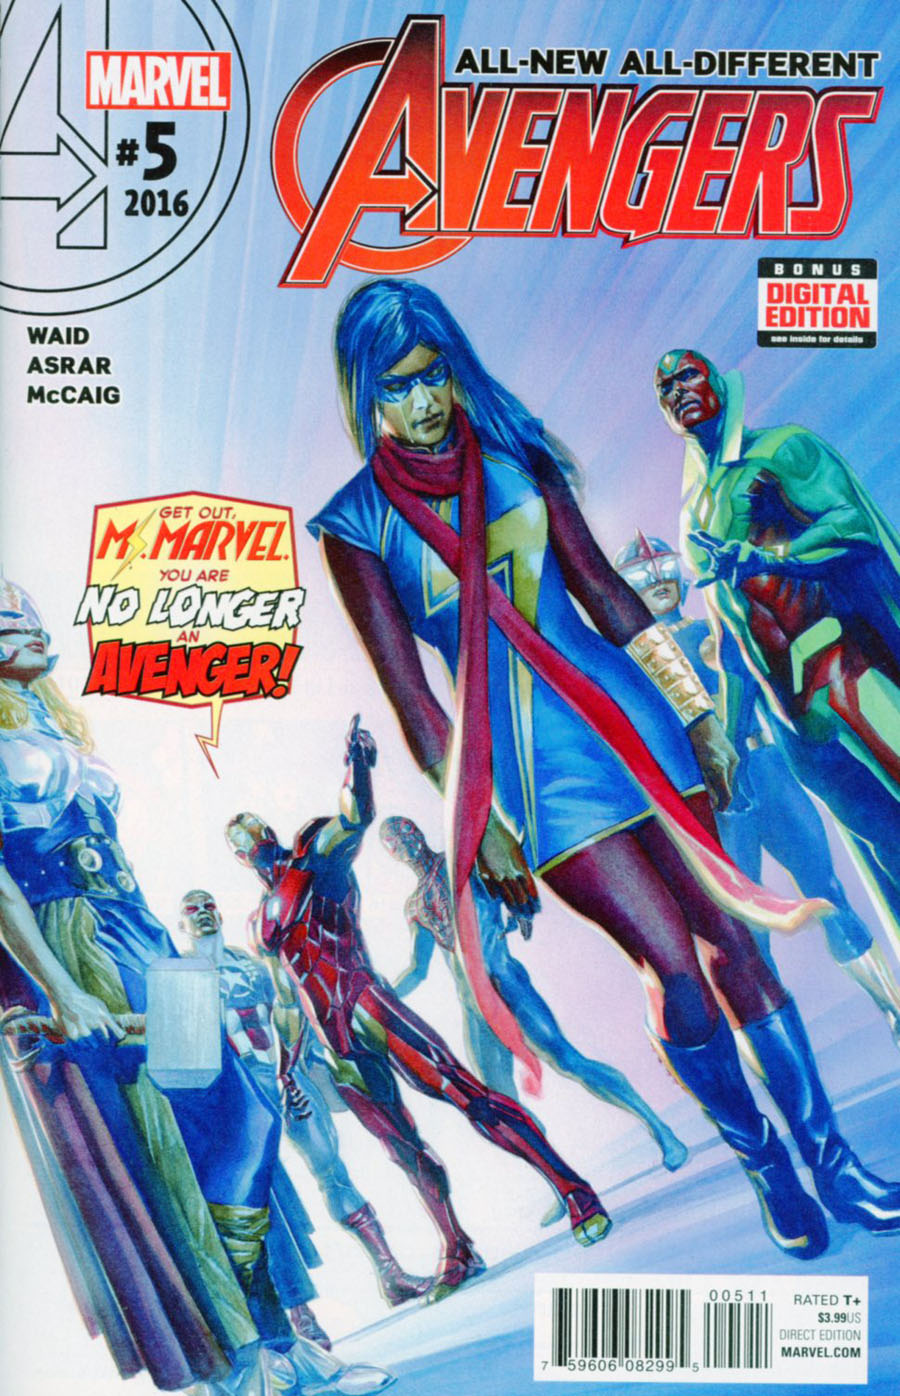 All-New All-Different Avengers #5 Cover A 1st Ptg Regular Alex Ross Cover